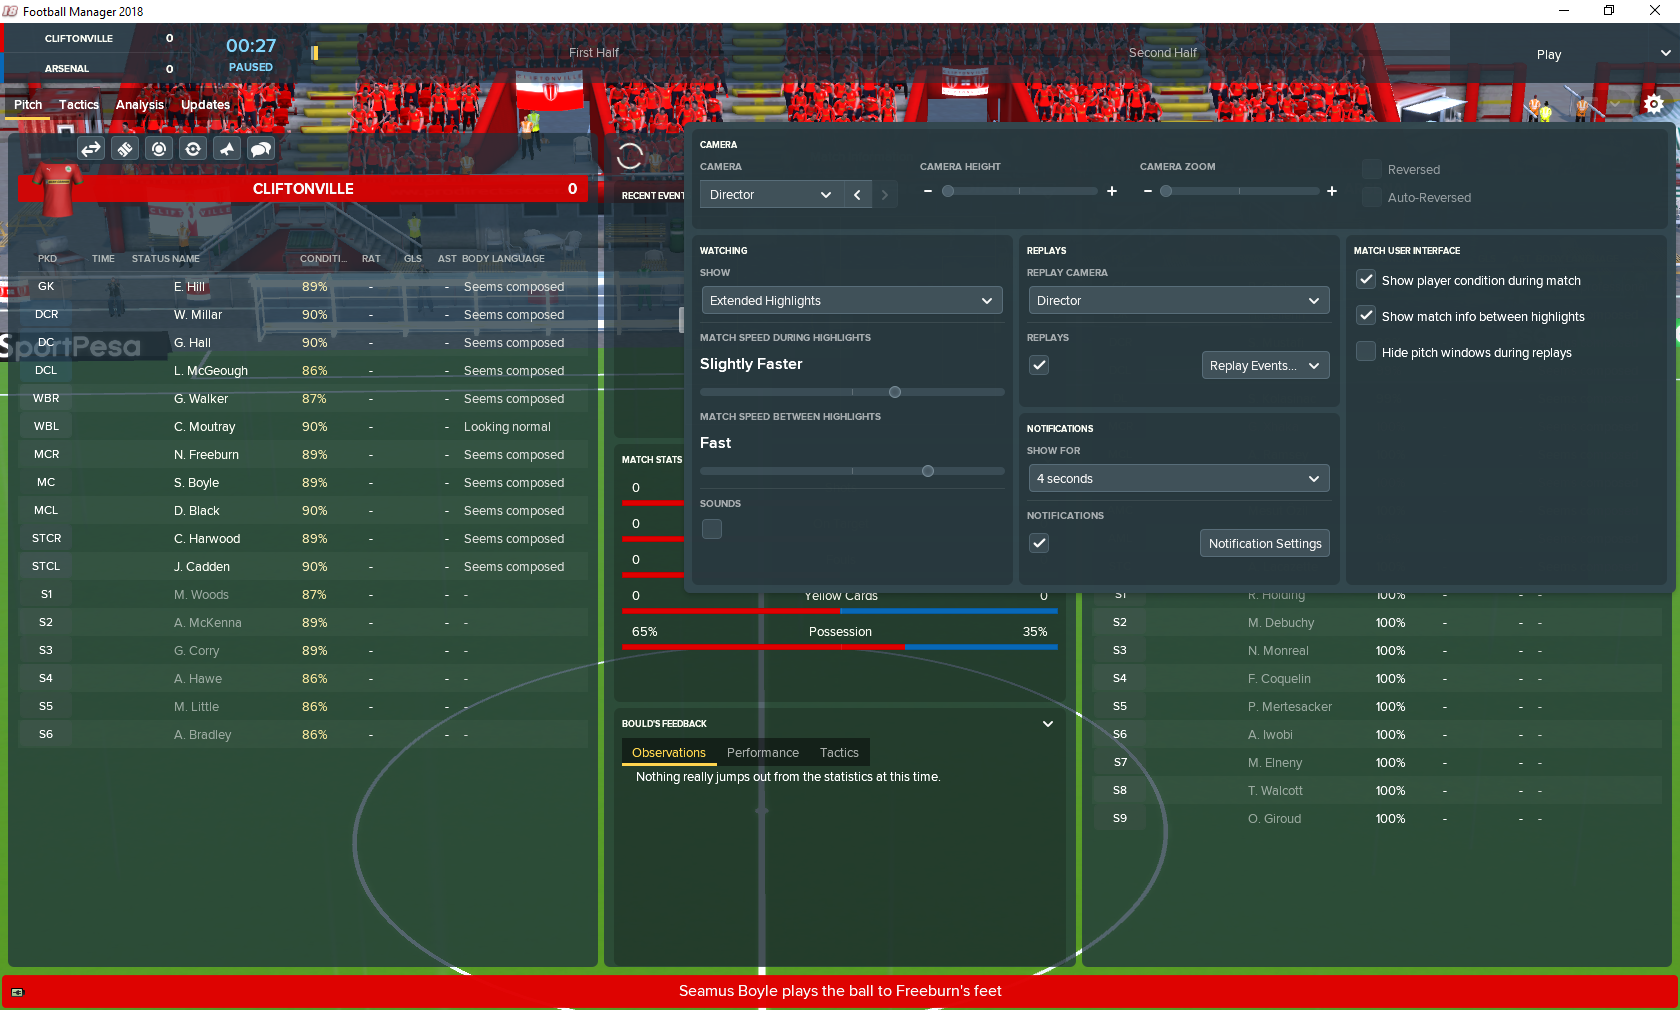 The Beginner's Guide To Football Manager 2018 - The Set Pieces